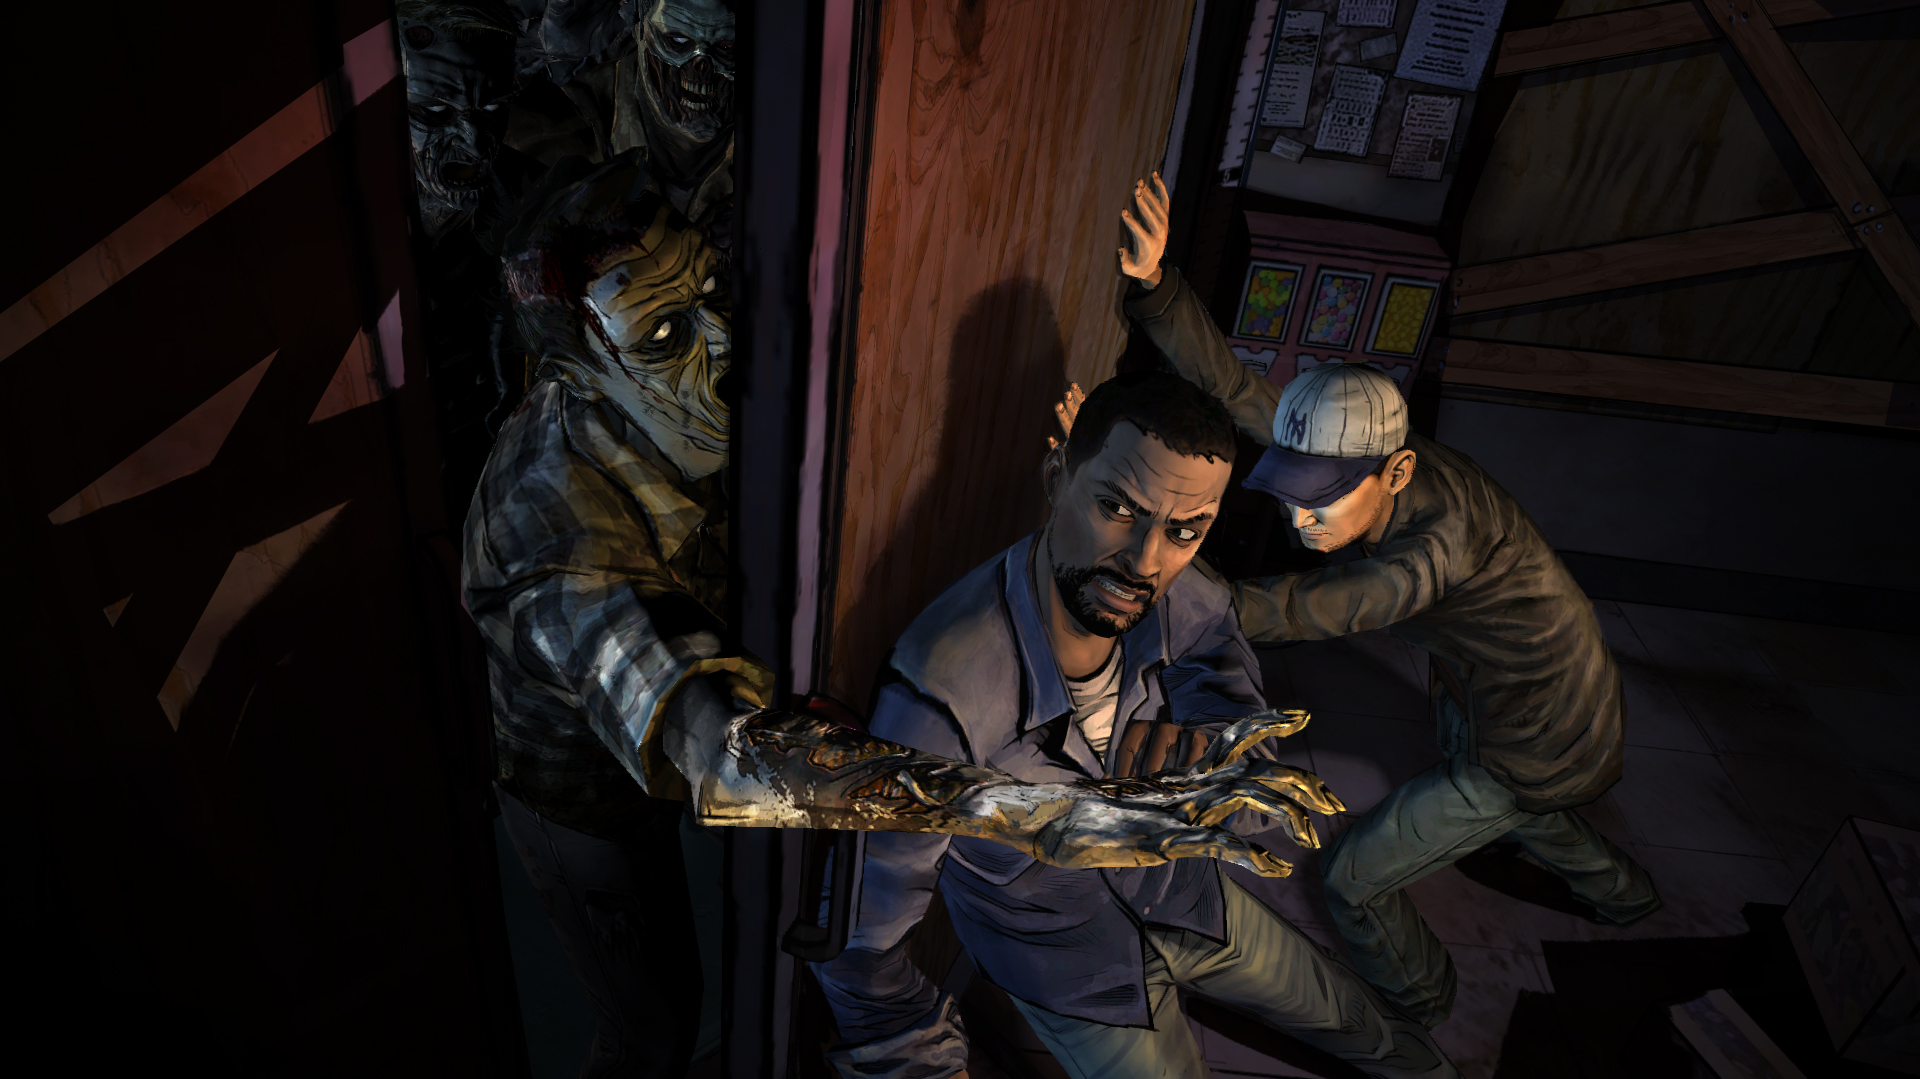 The Walking Dead Game images TWD game HD wallpaper and background photos